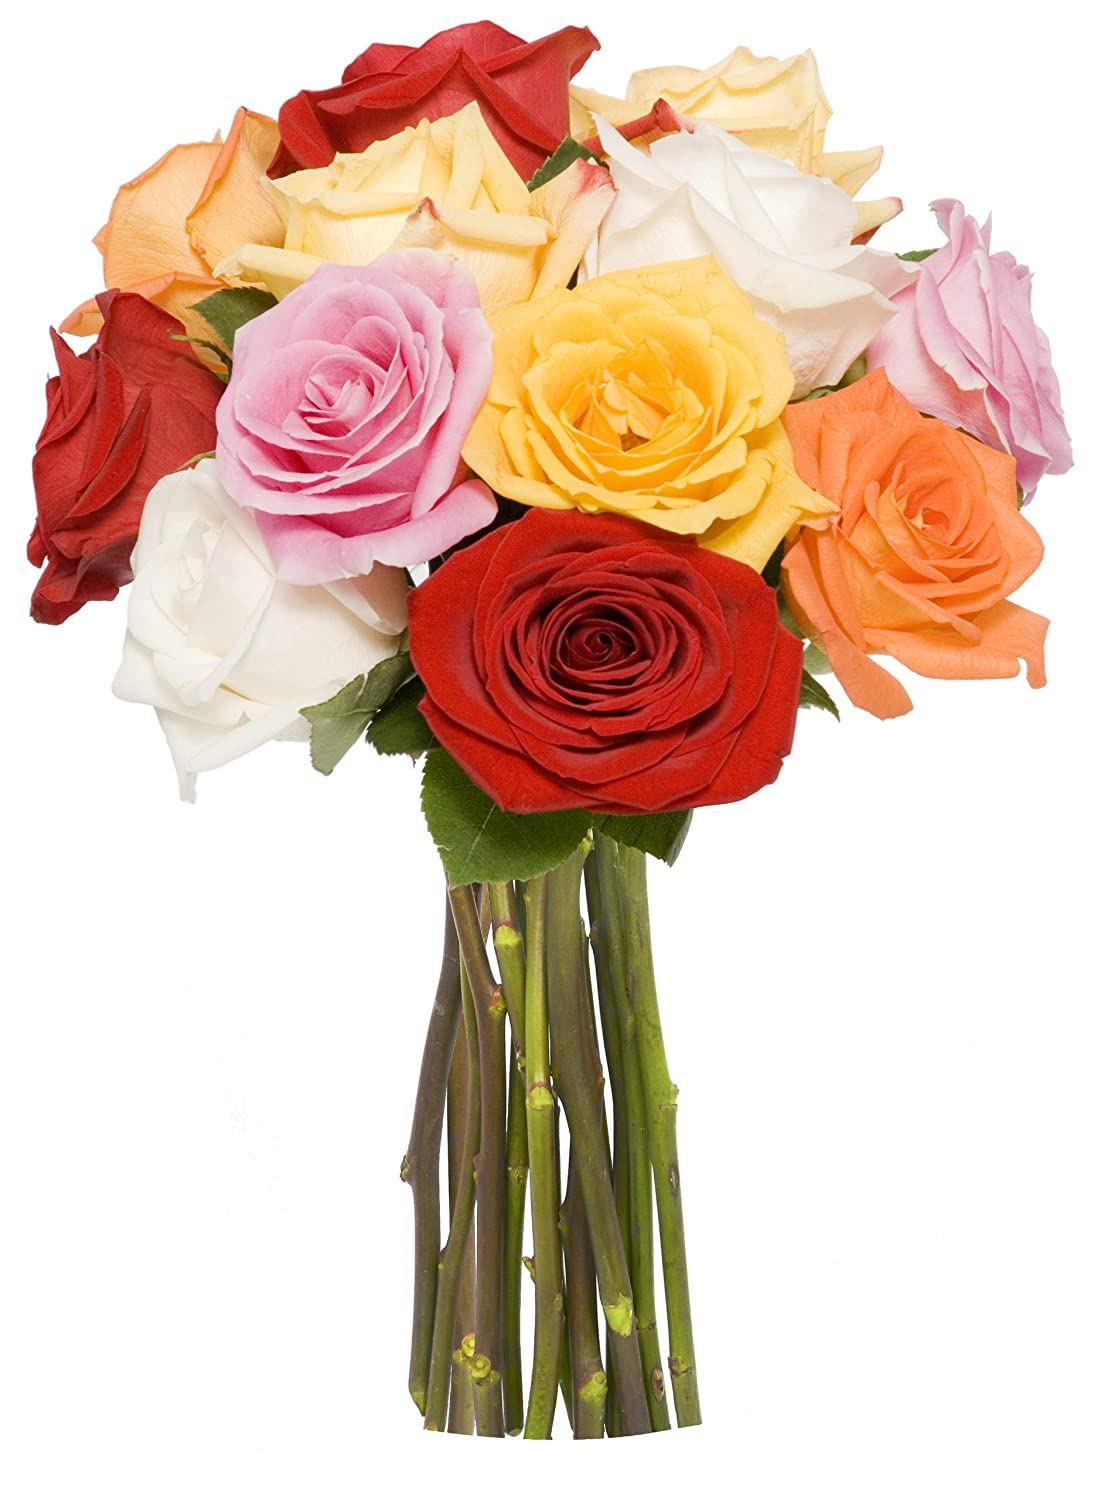 Amazon benchmark bouquets dozen rainbow roses no vase fresh amazon benchmark bouquets dozen rainbow roses no vase fresh cut format rose flowers grocery gourmet food izmirmasajfo